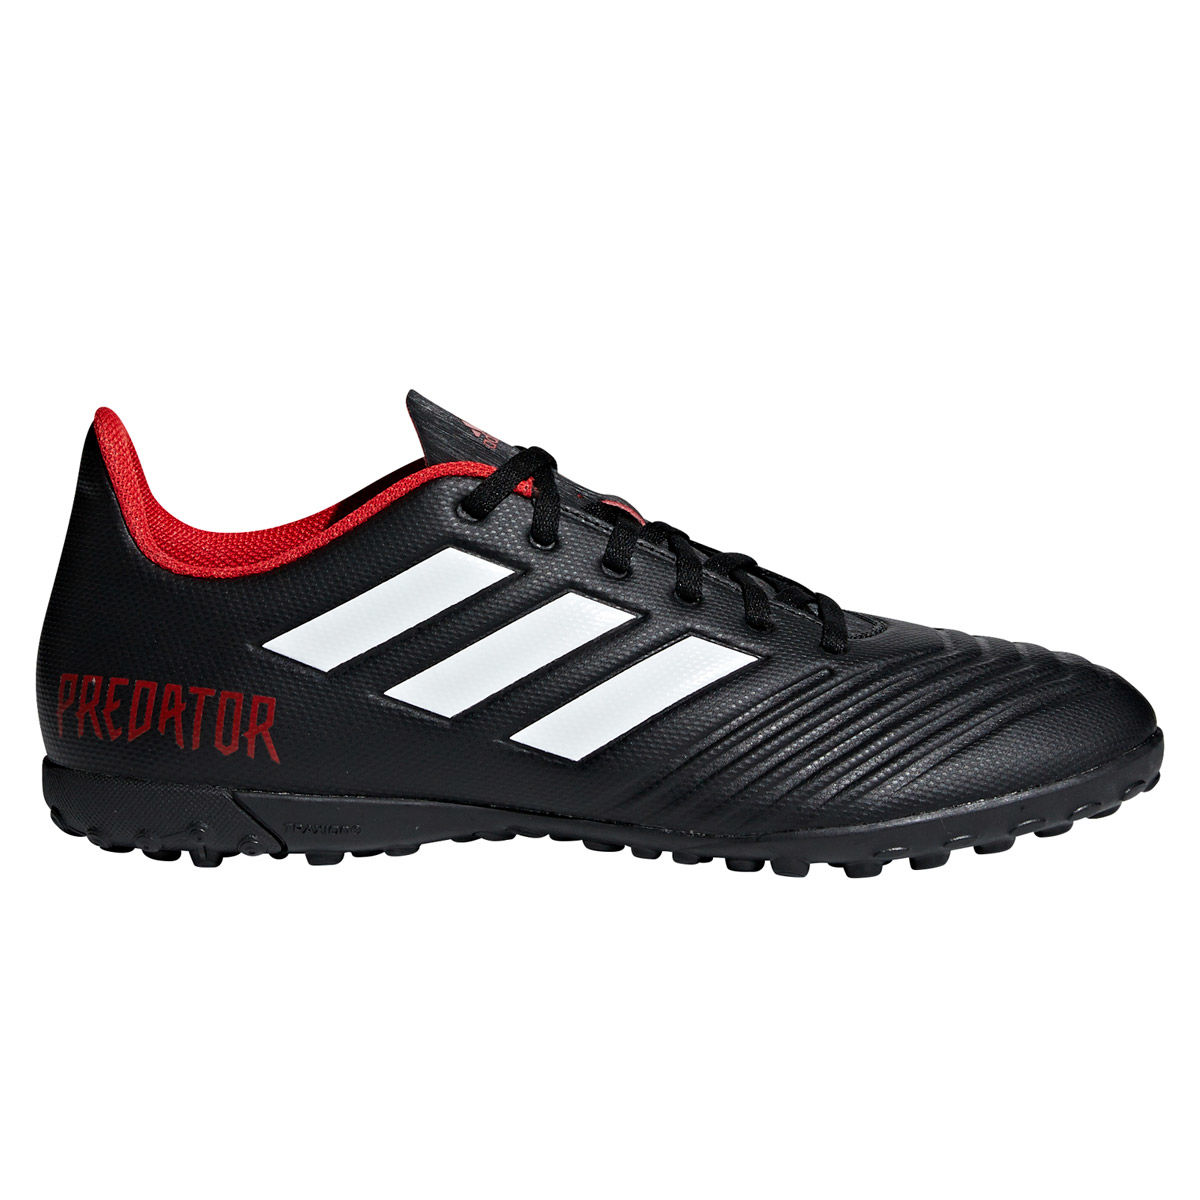 adidas Predator 18.4 Mens Soccer Cleat